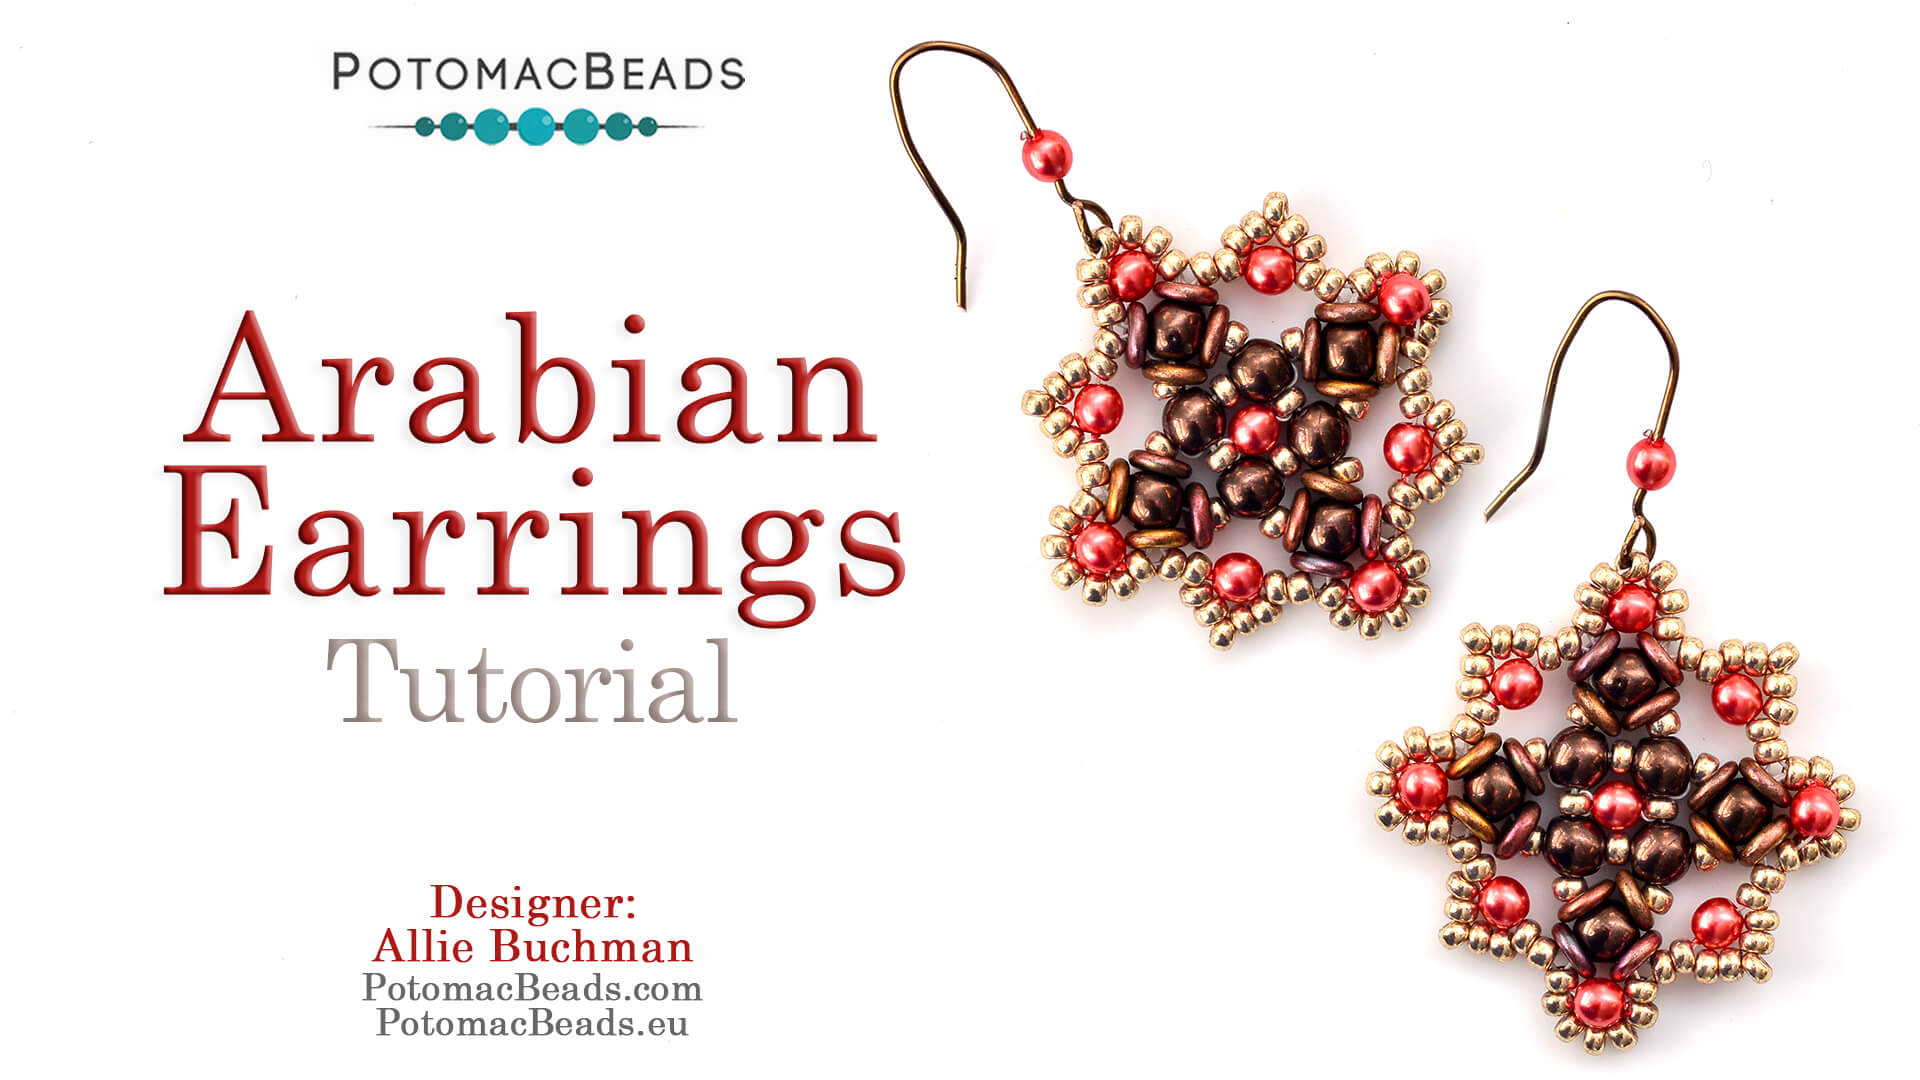 How to Bead Jewelry / Videos Sorted by Beads / Pearl Videos (Czech, Freshwater, Potomac Pearls) / Arabian Earrings Tutorial